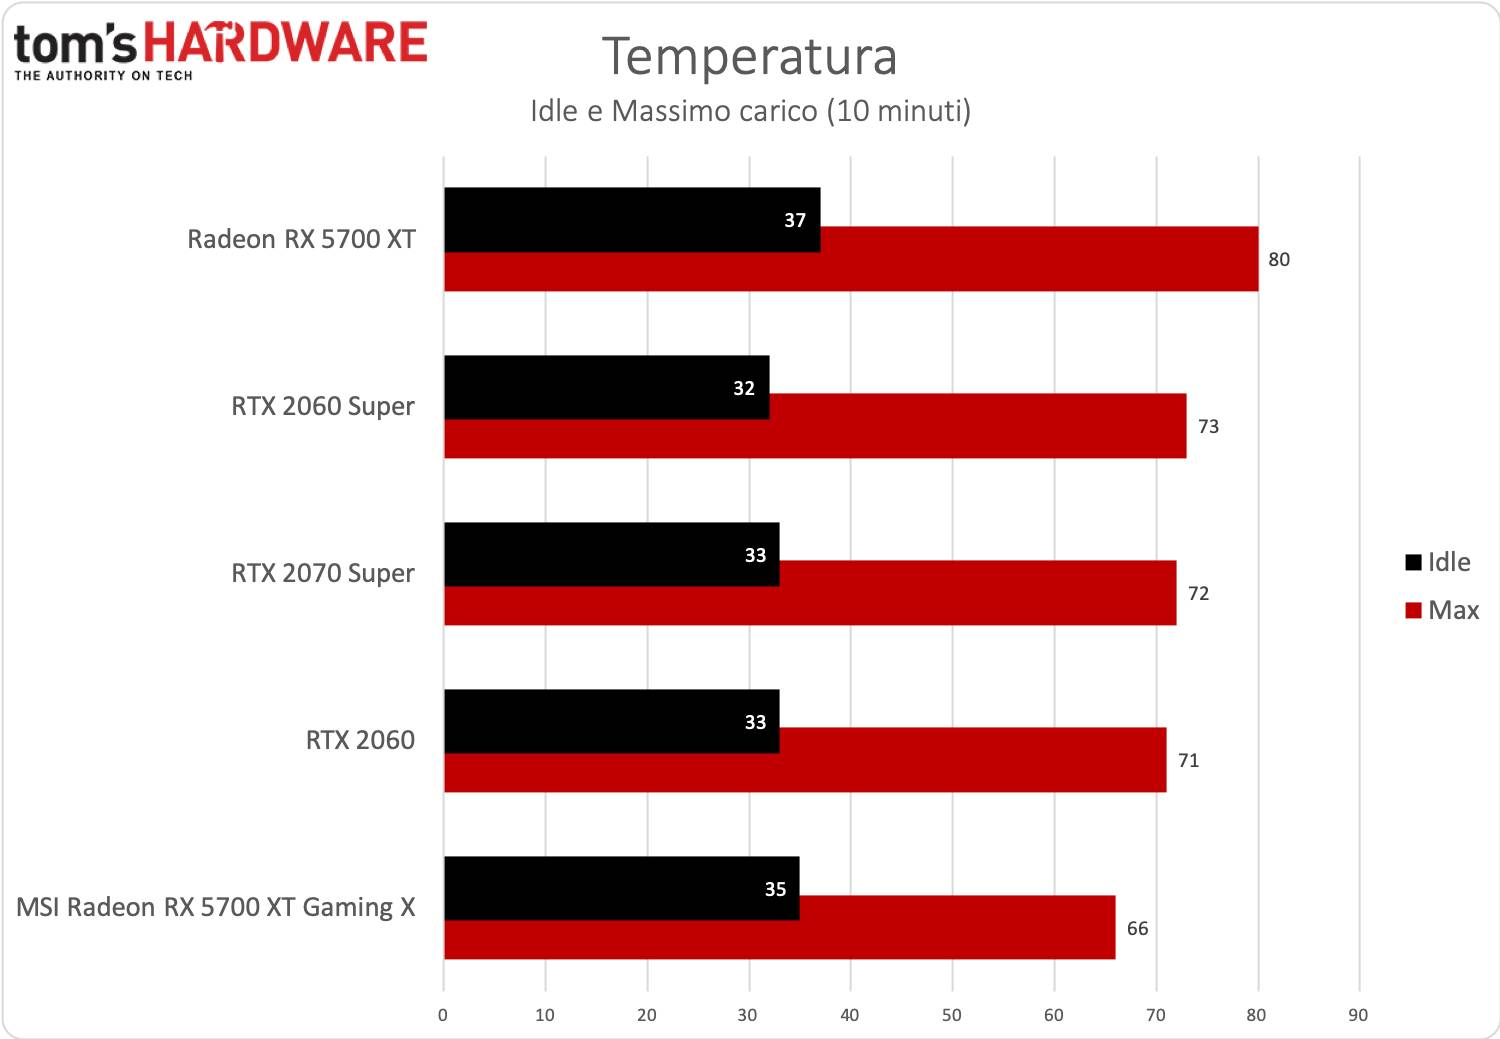 Test MSI RX 5700 XT Gaming X temperature